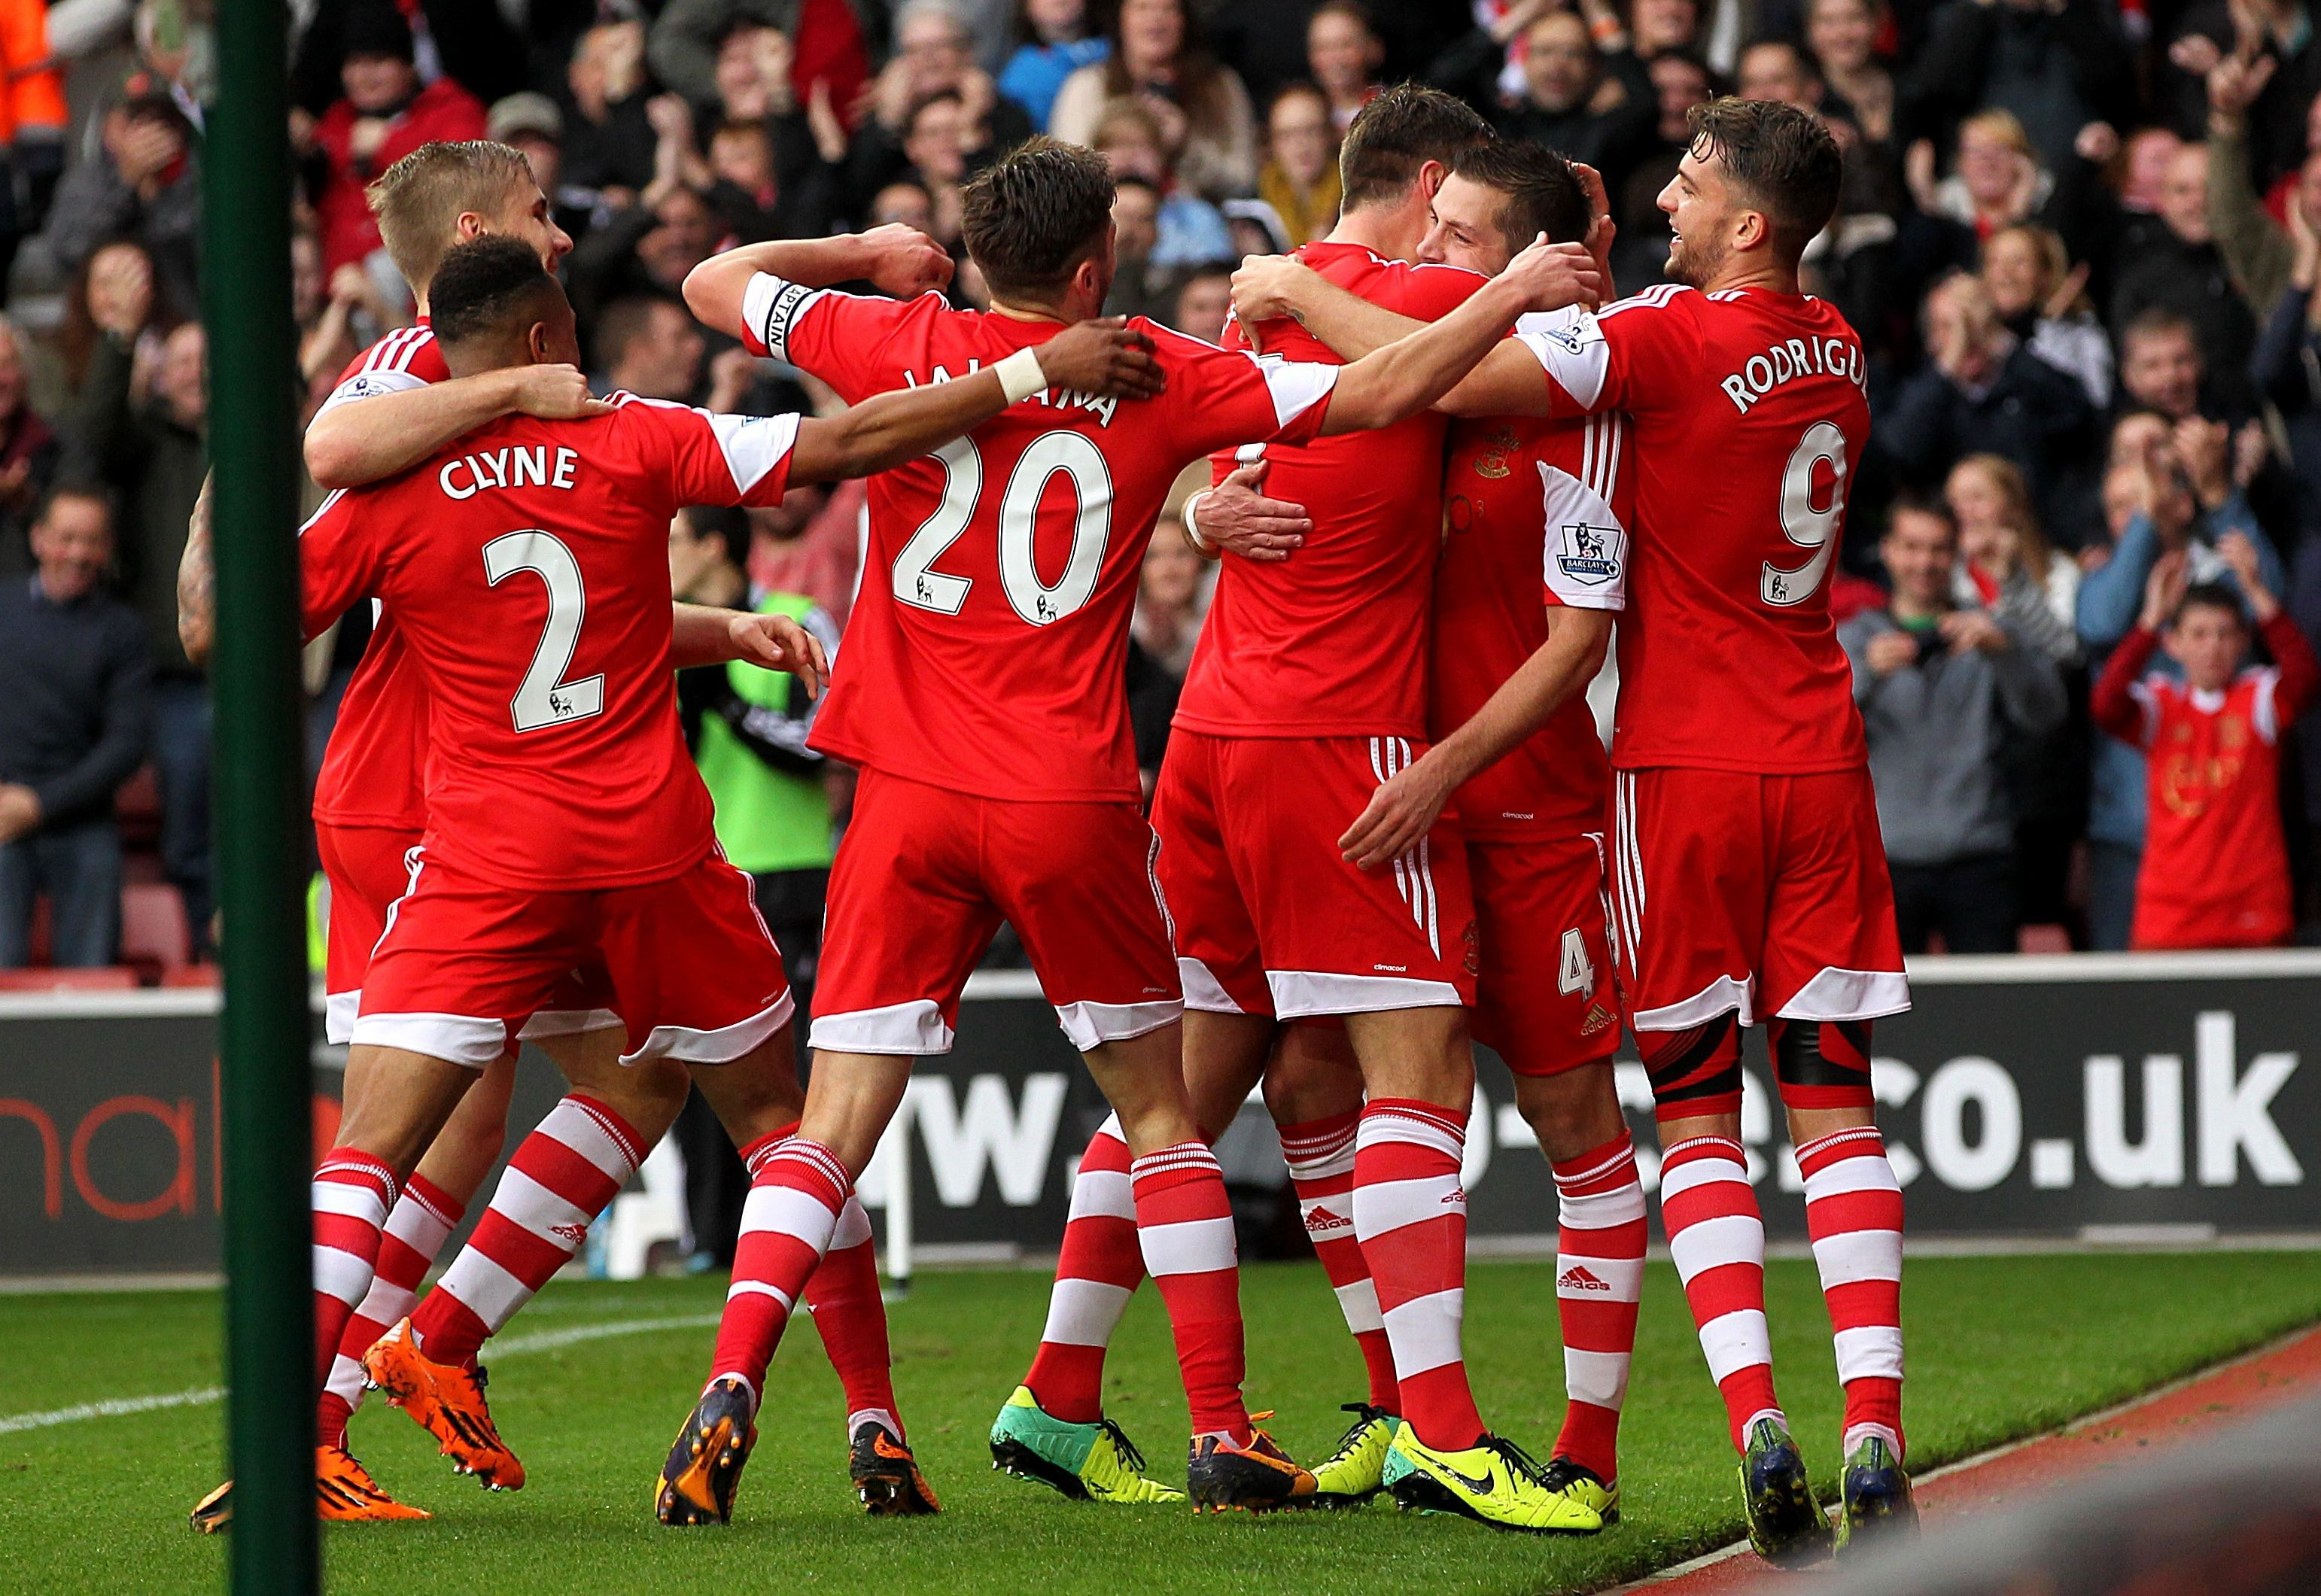 Southampton's identity and the similarities with Theseus' paradox